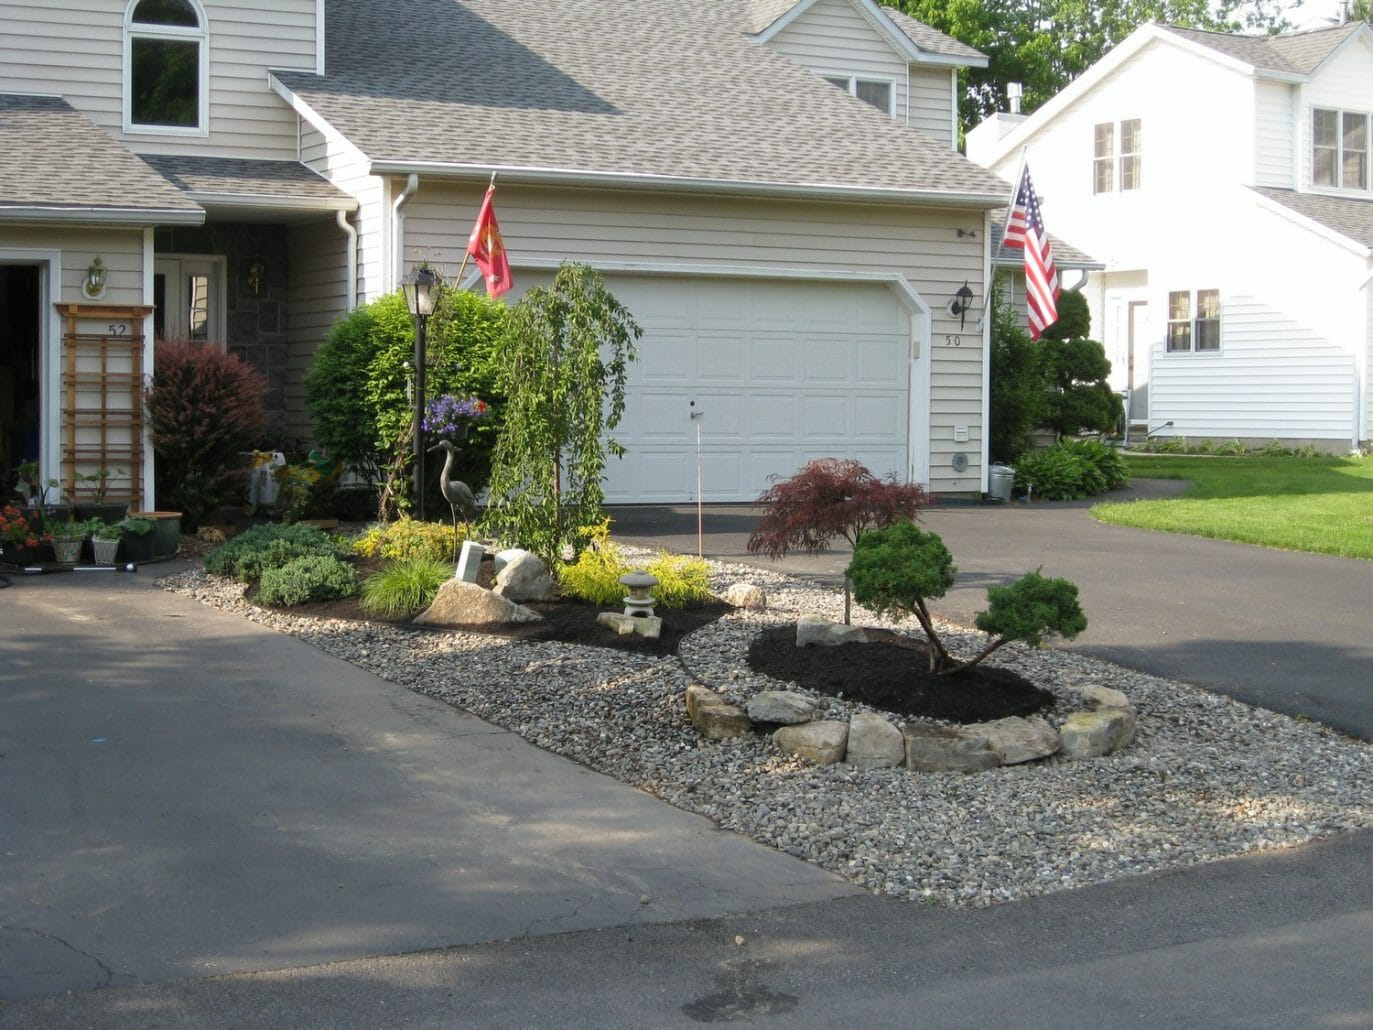 Albany NY townhome landscape design 1373x1030 - Landscape Plan Installation and Project Management